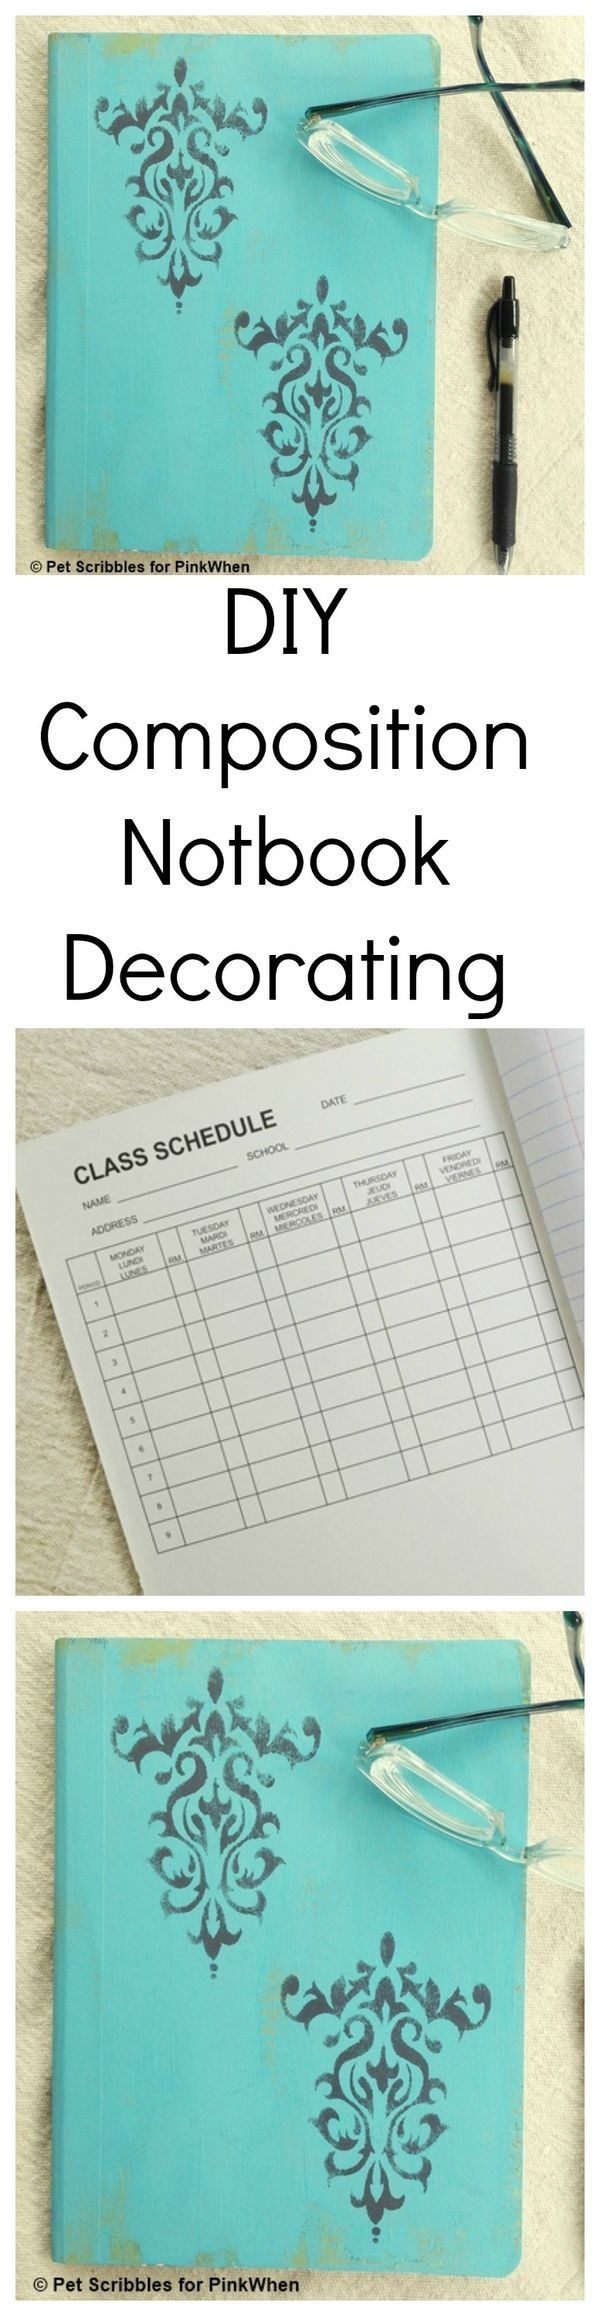 Take a regular old composition notebook and give it a MAKEOVER with this DIY idea and tutorial.